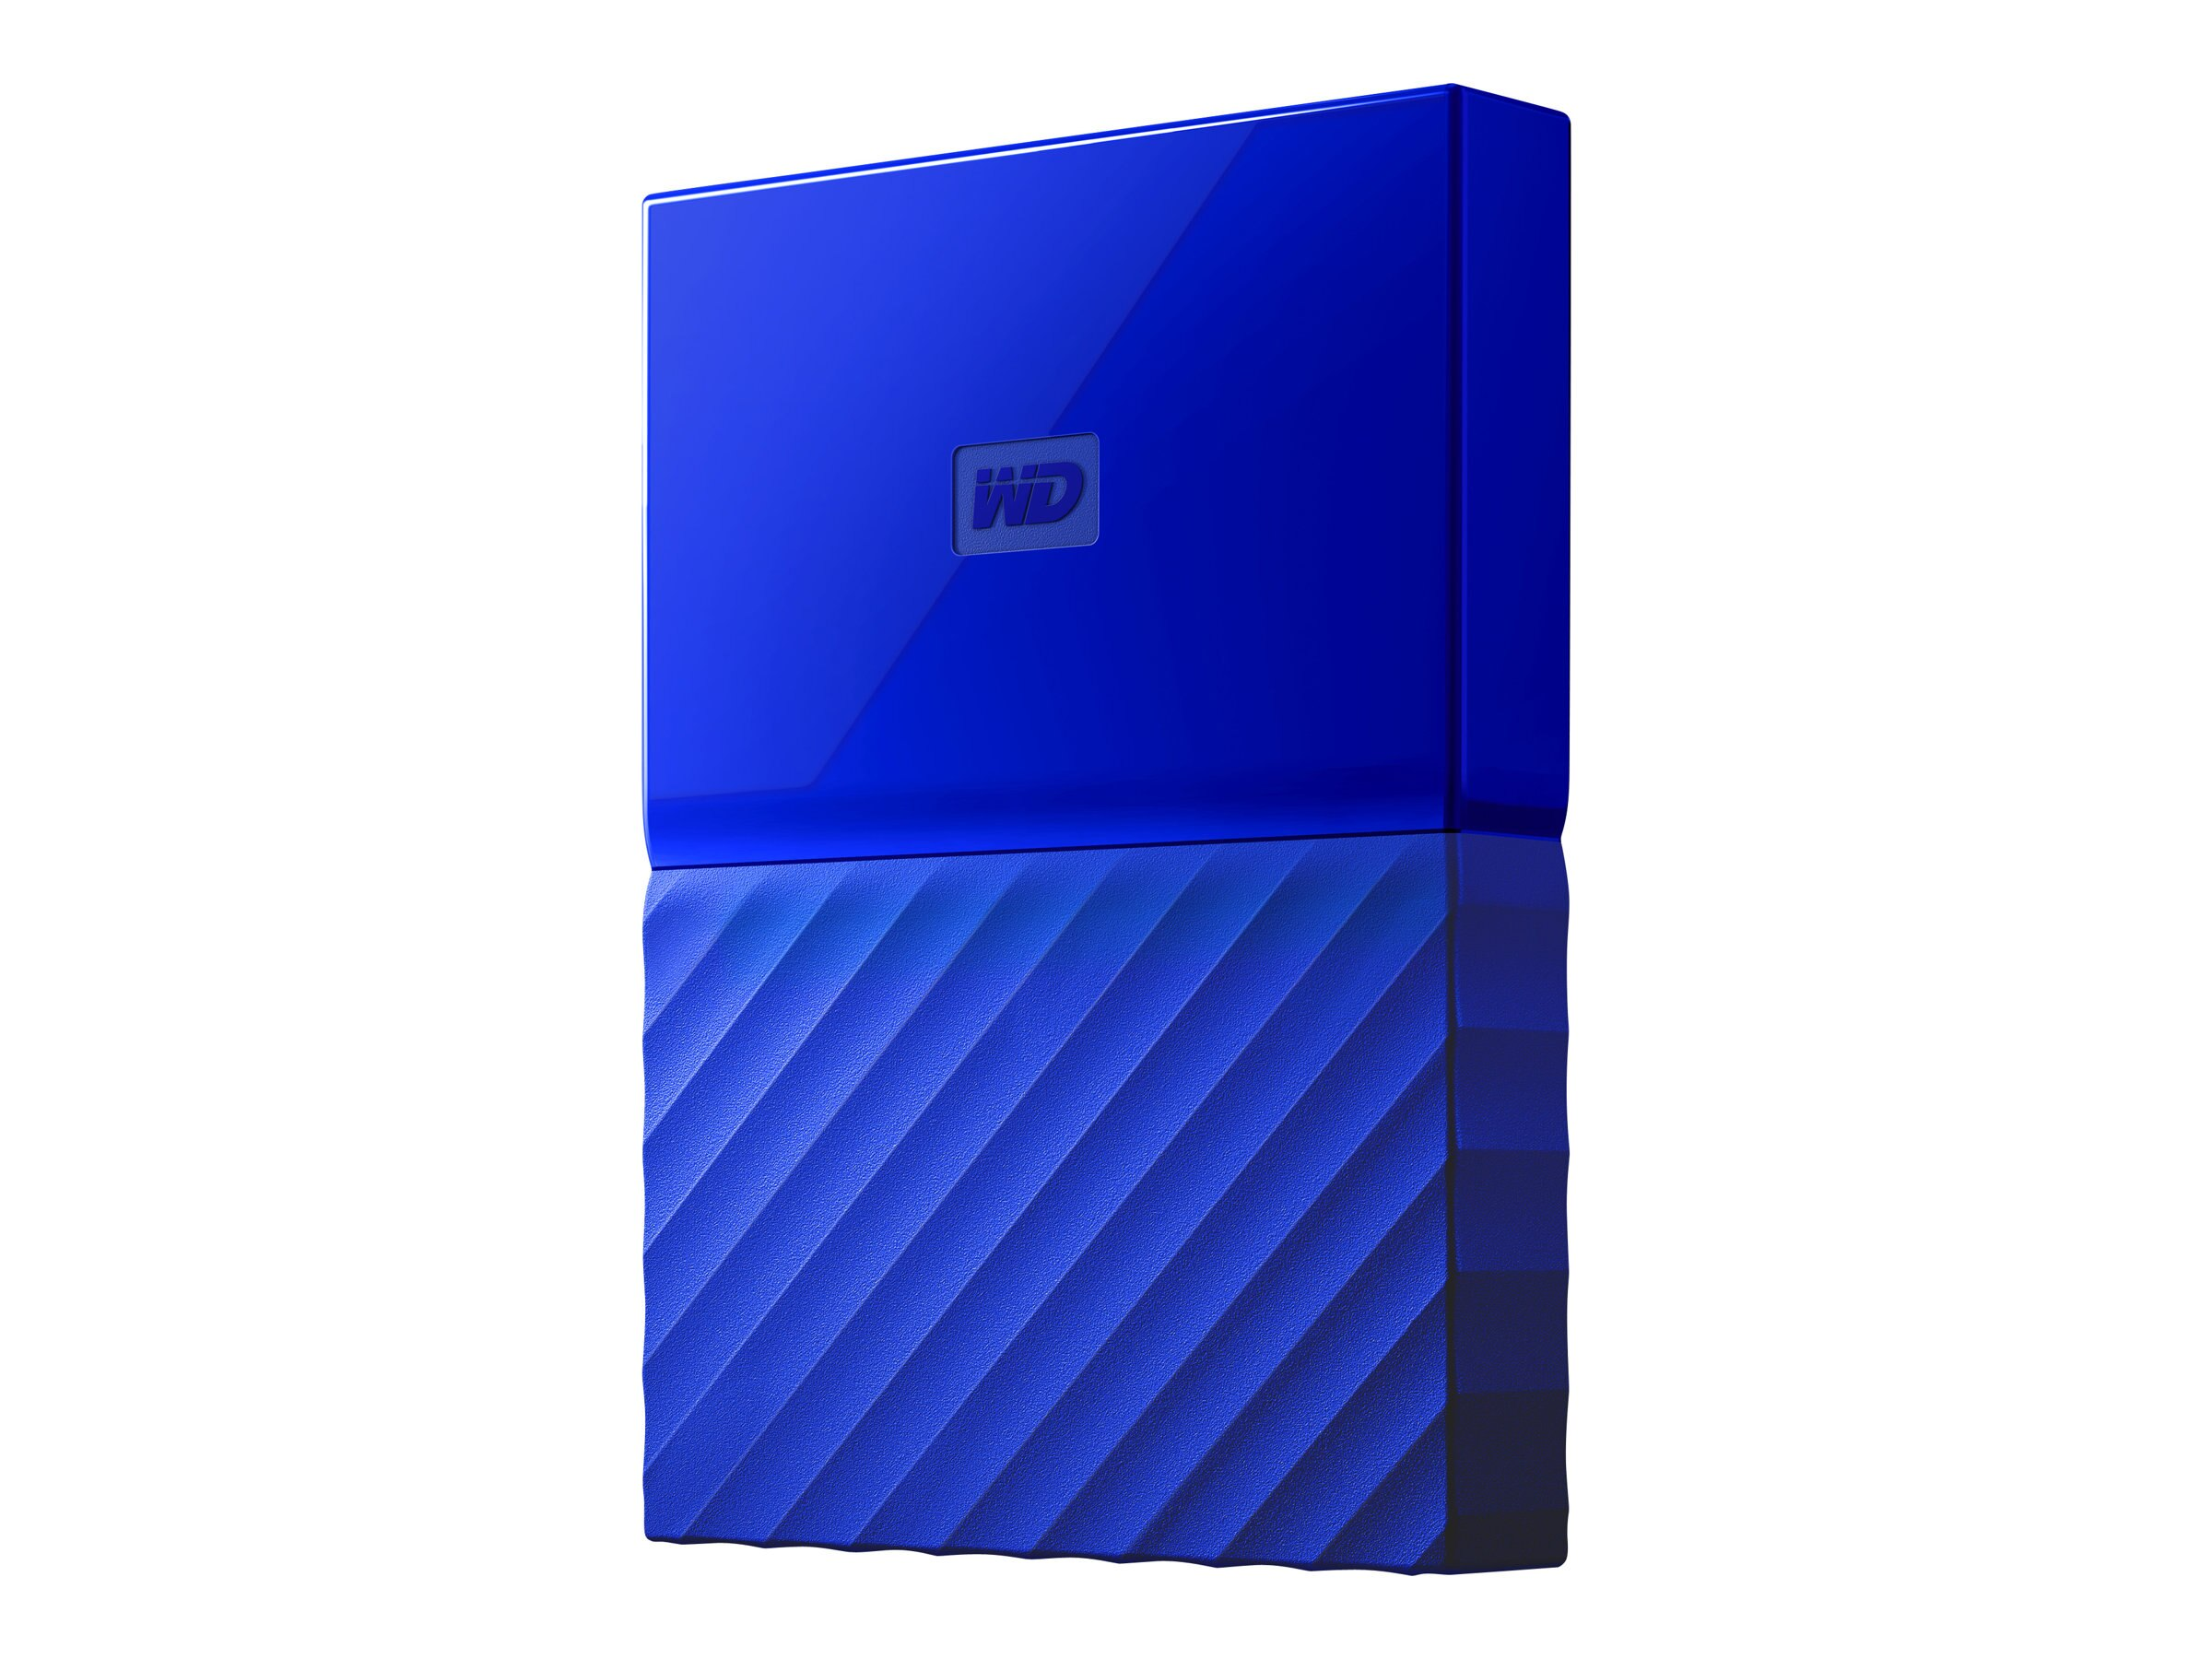 WD 3TB My Passport USB 3.0 Portable Hard Drive - Blue, WDBYFT0030BBL-WESN